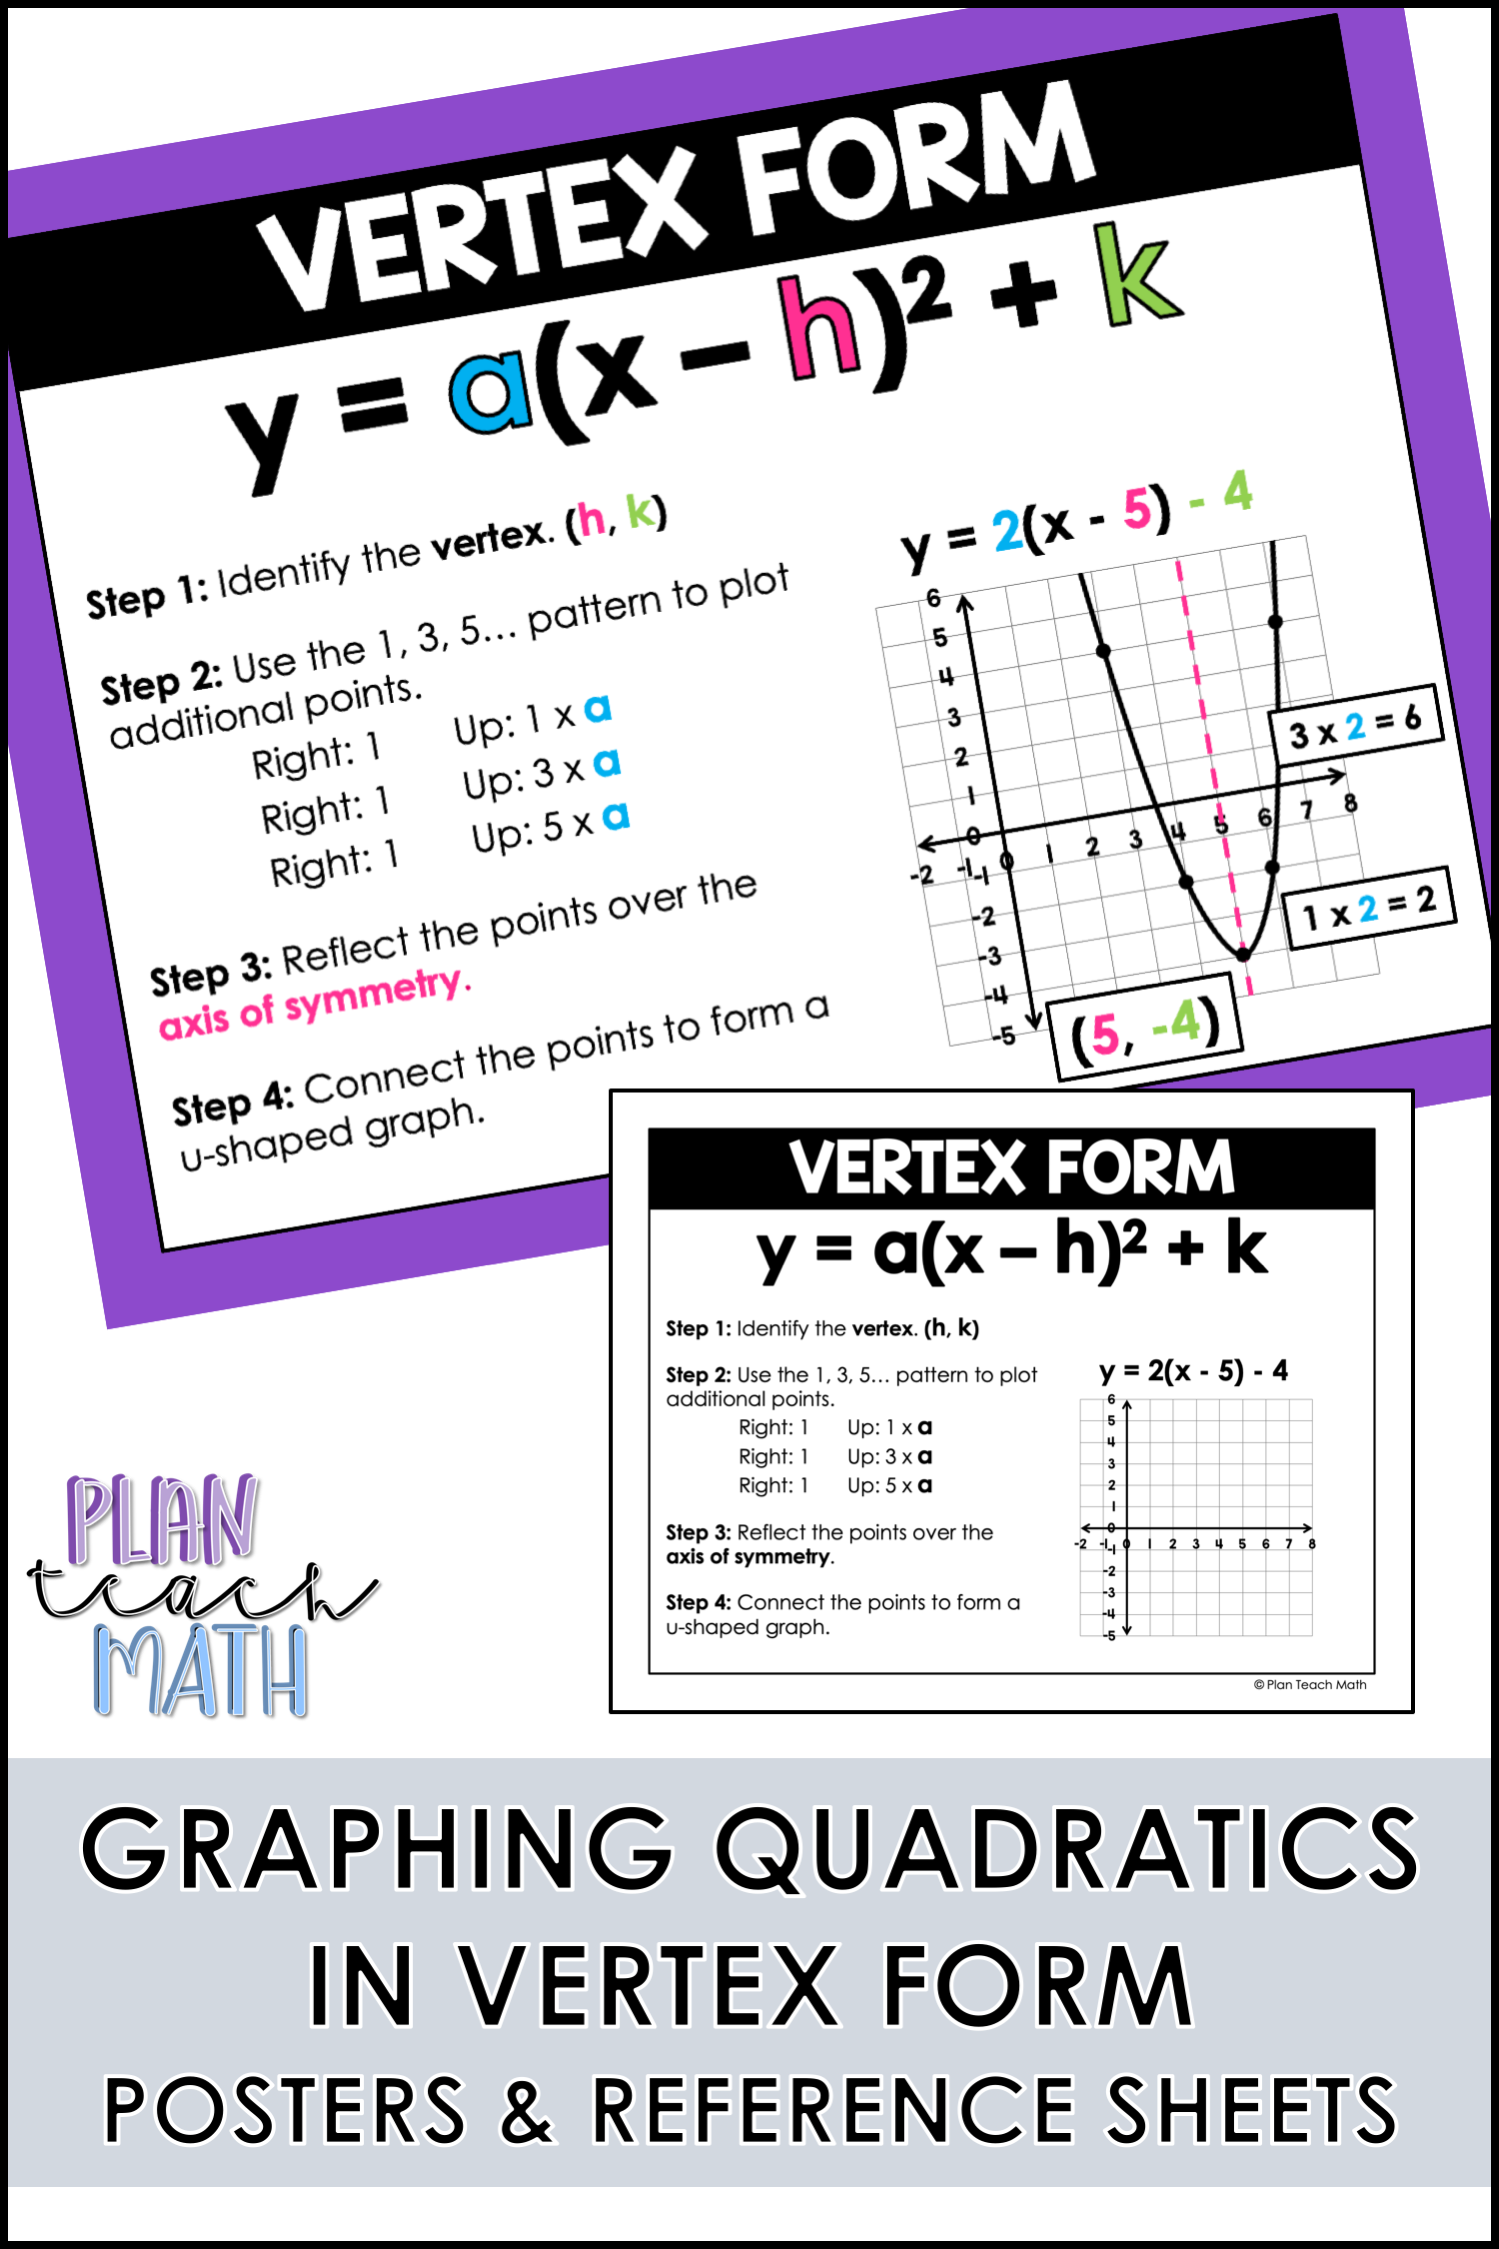 Graphing Quadratics Standard Form And Vertex Form Posters